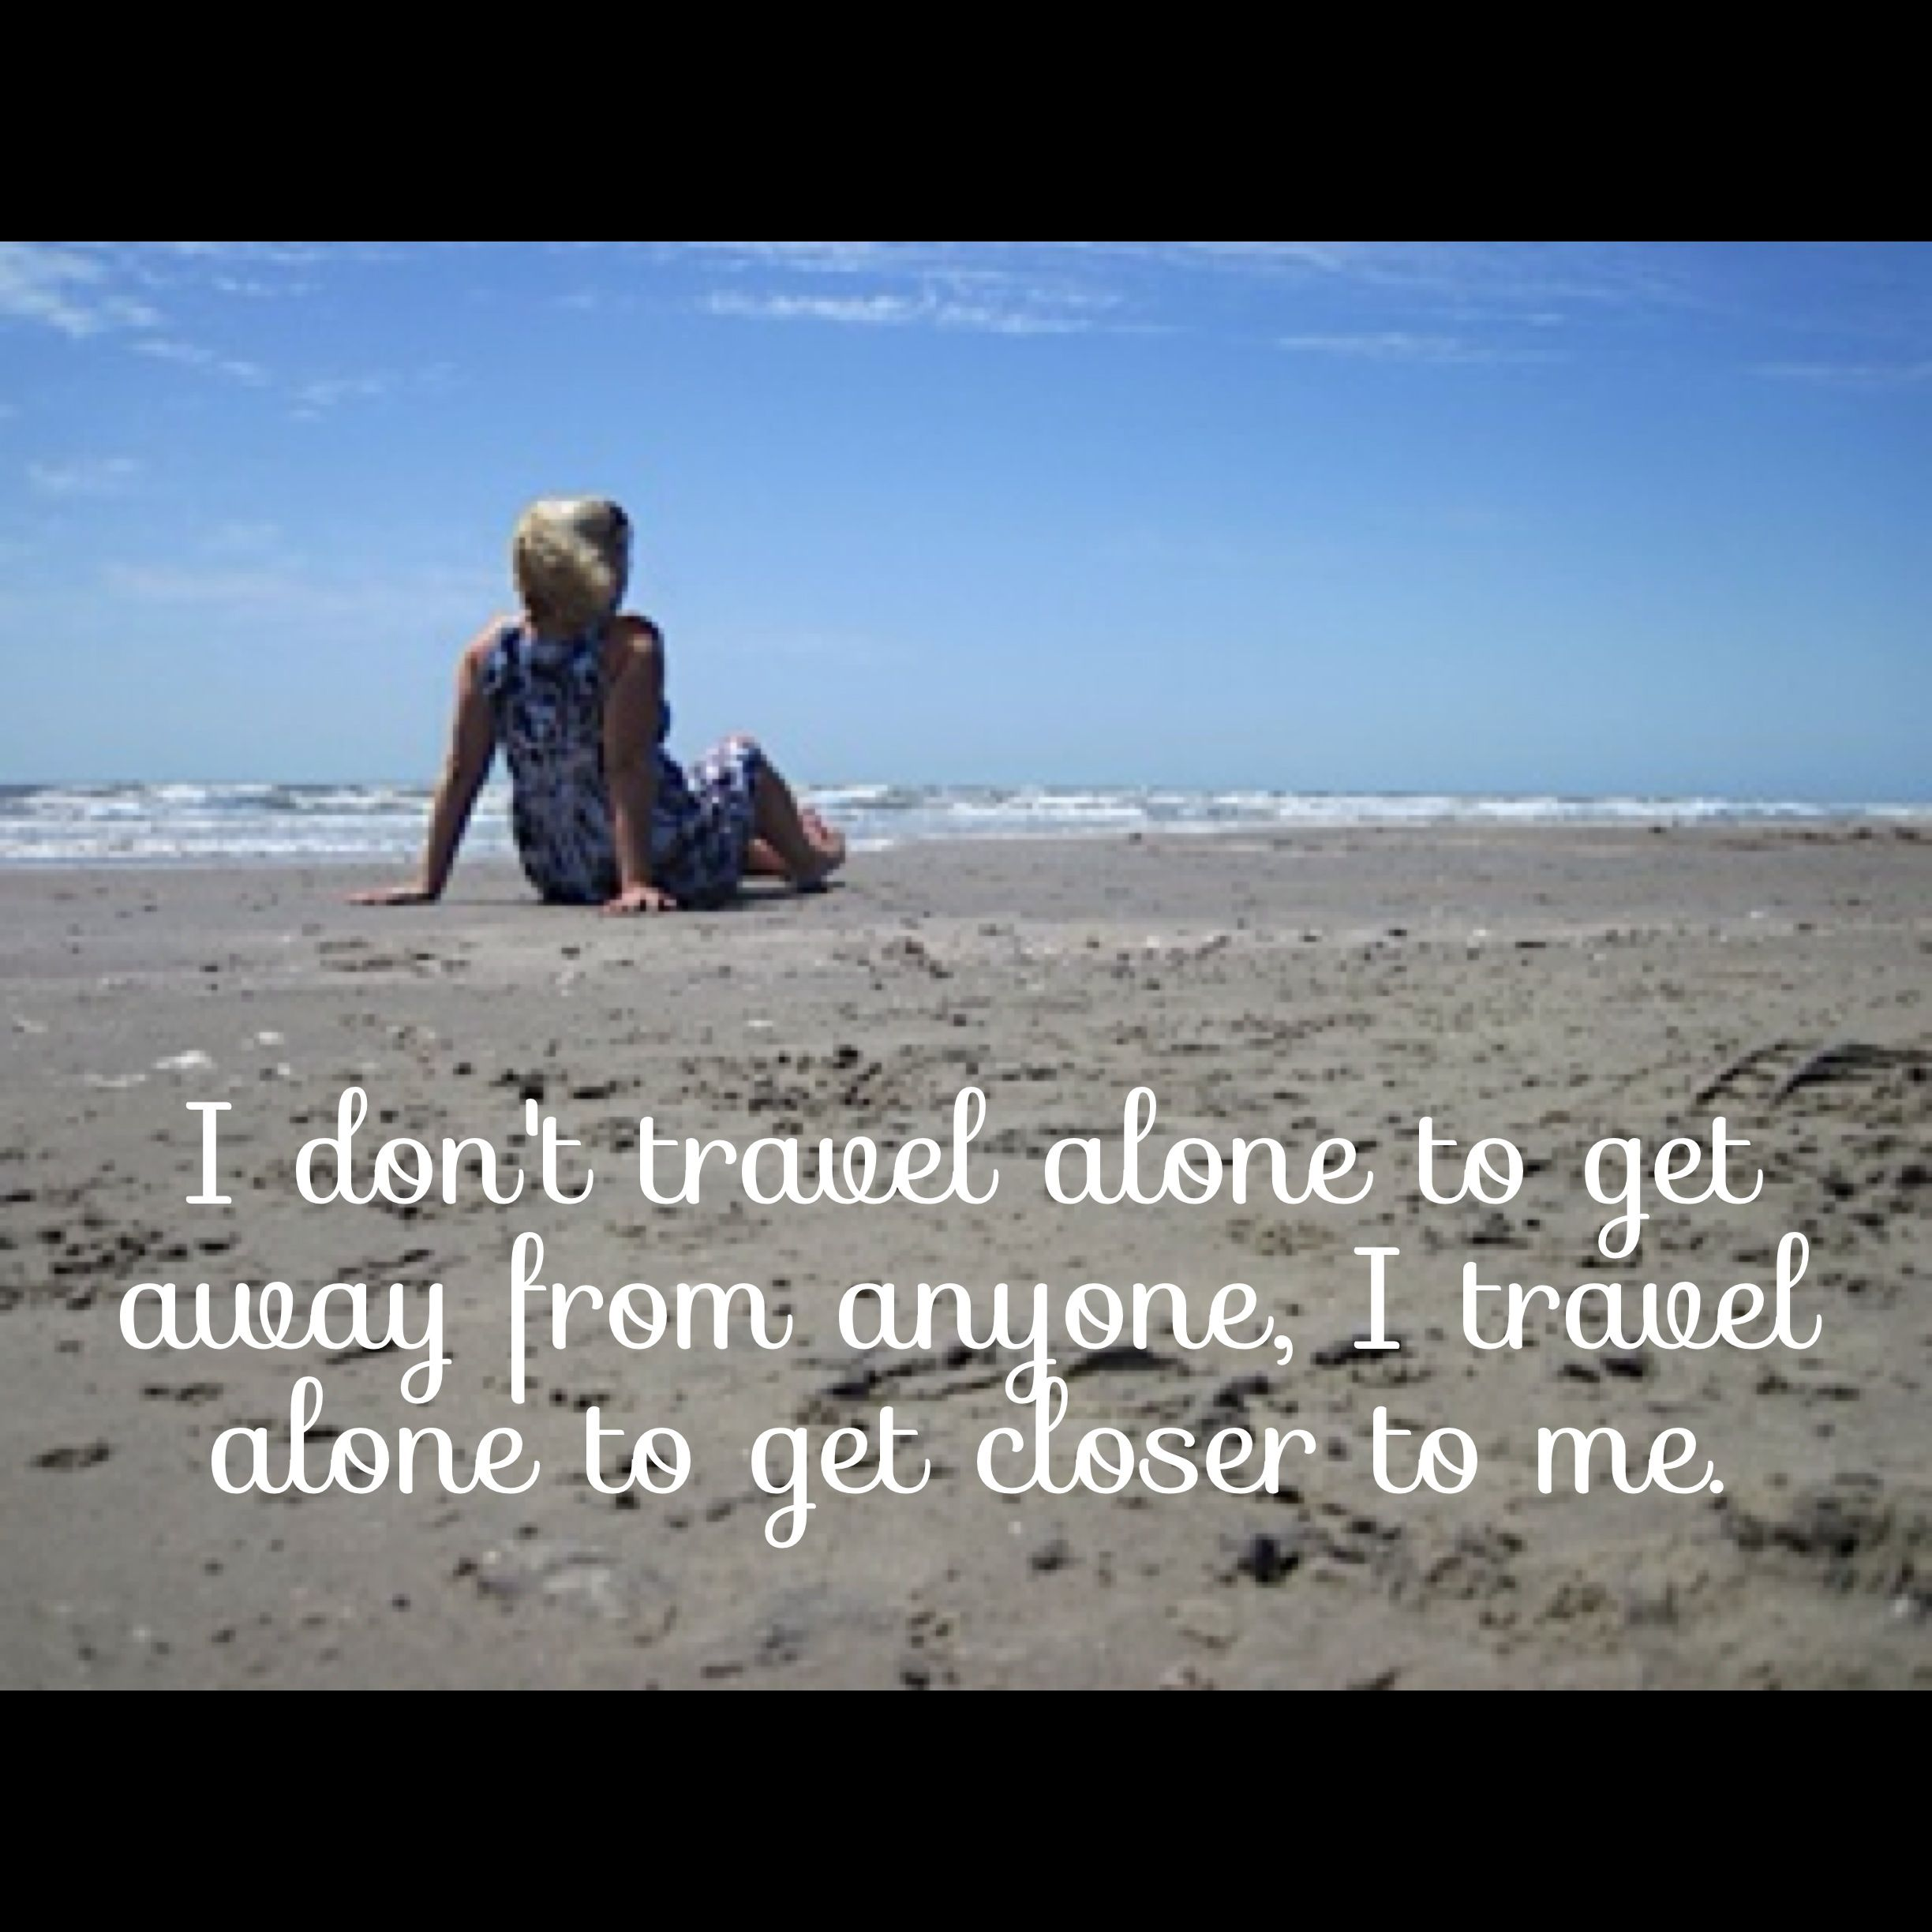 Travel Alone Quotes Unique Self Photo With My Words To Describe Why I Love To Travel Solo